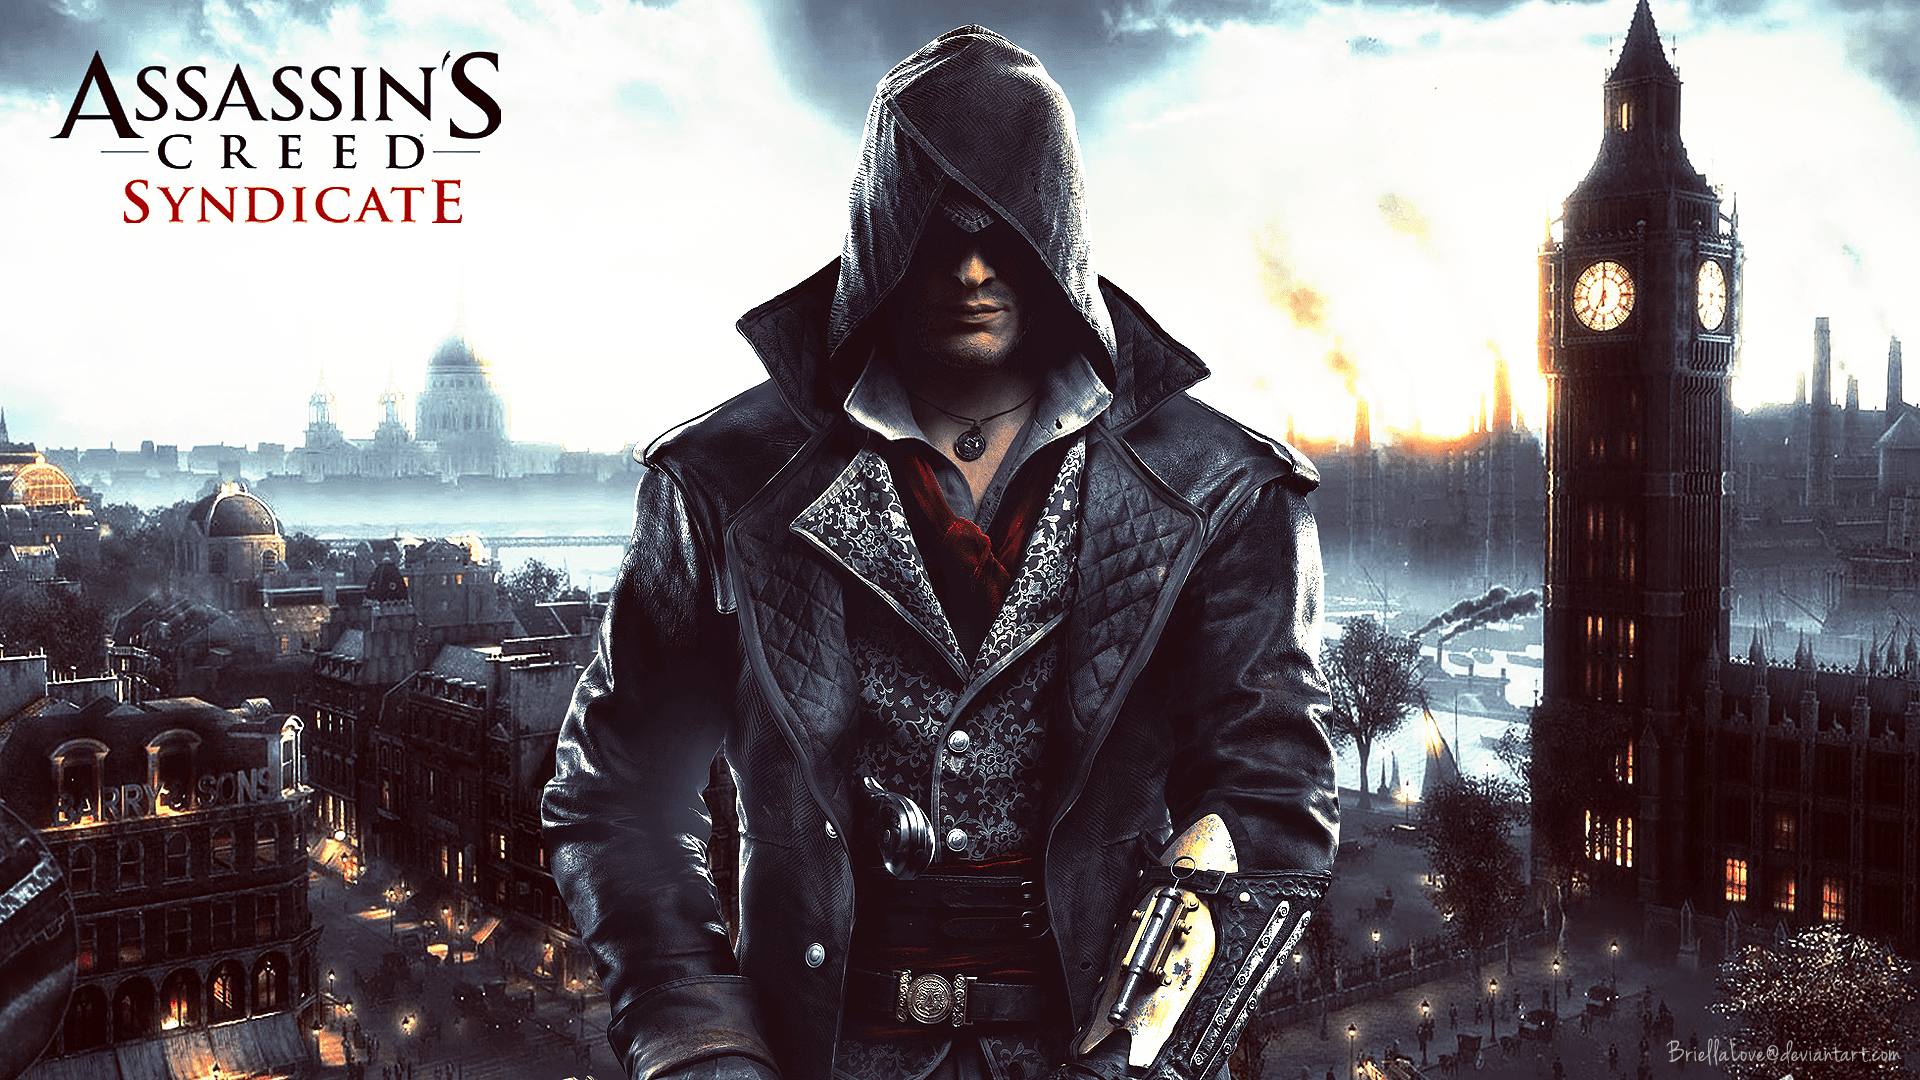 Assassin's Creed Syndicate free for Xbox Live Gold